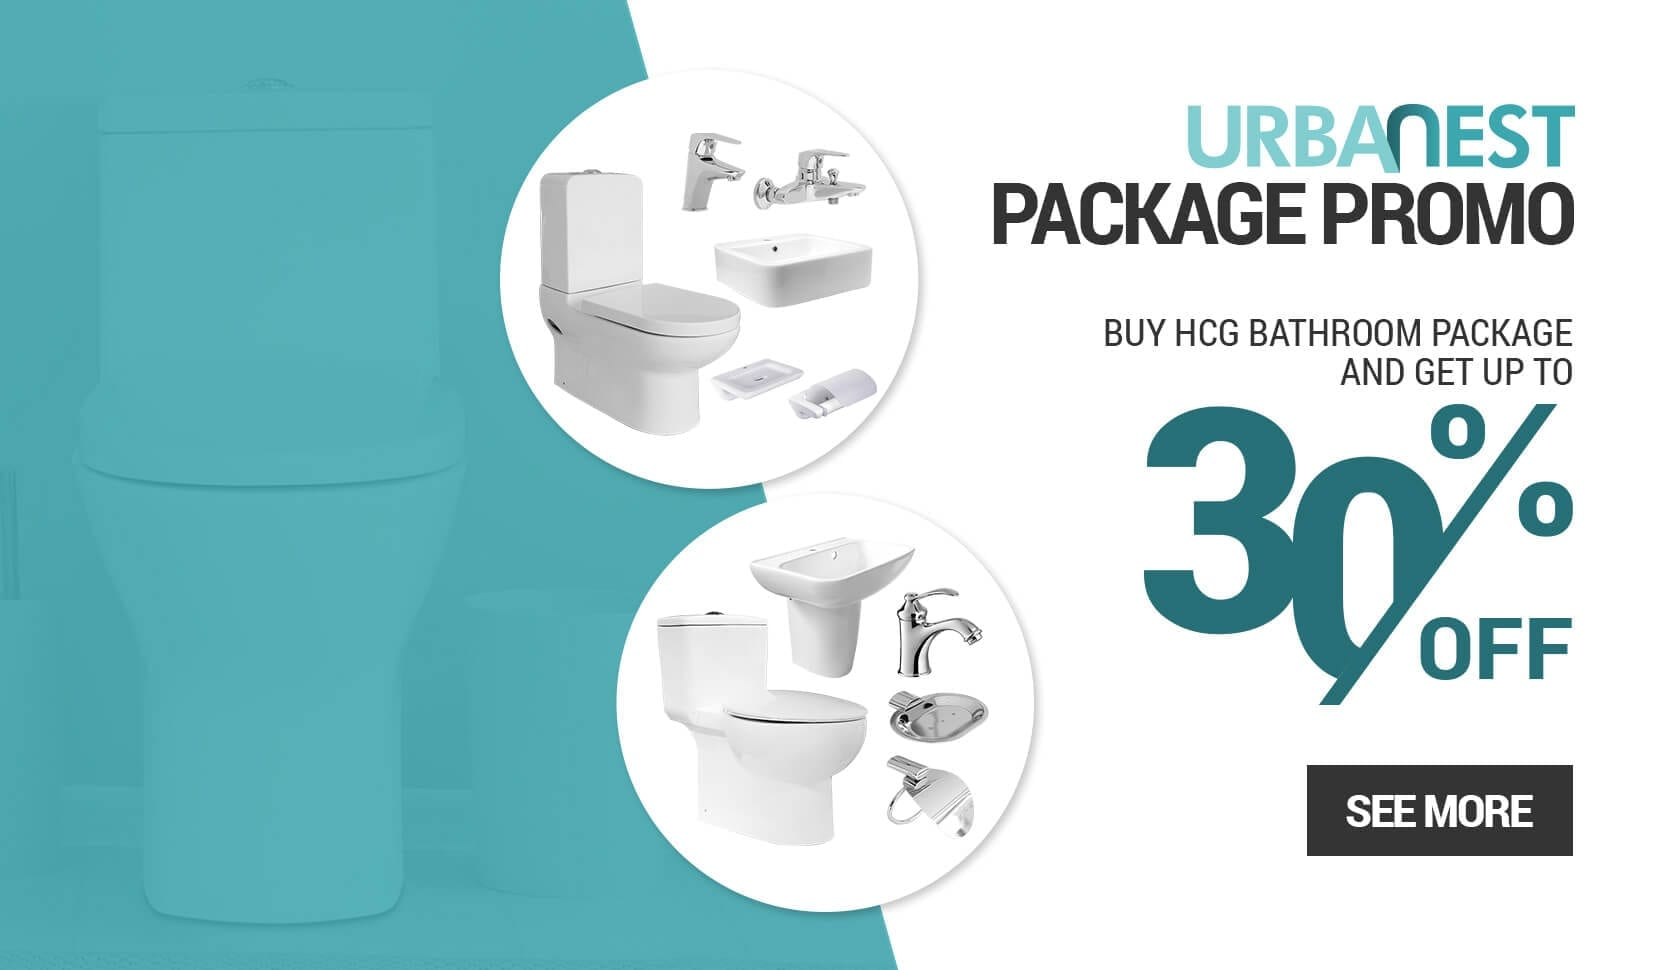 Urbanest Package Promotion May.2019